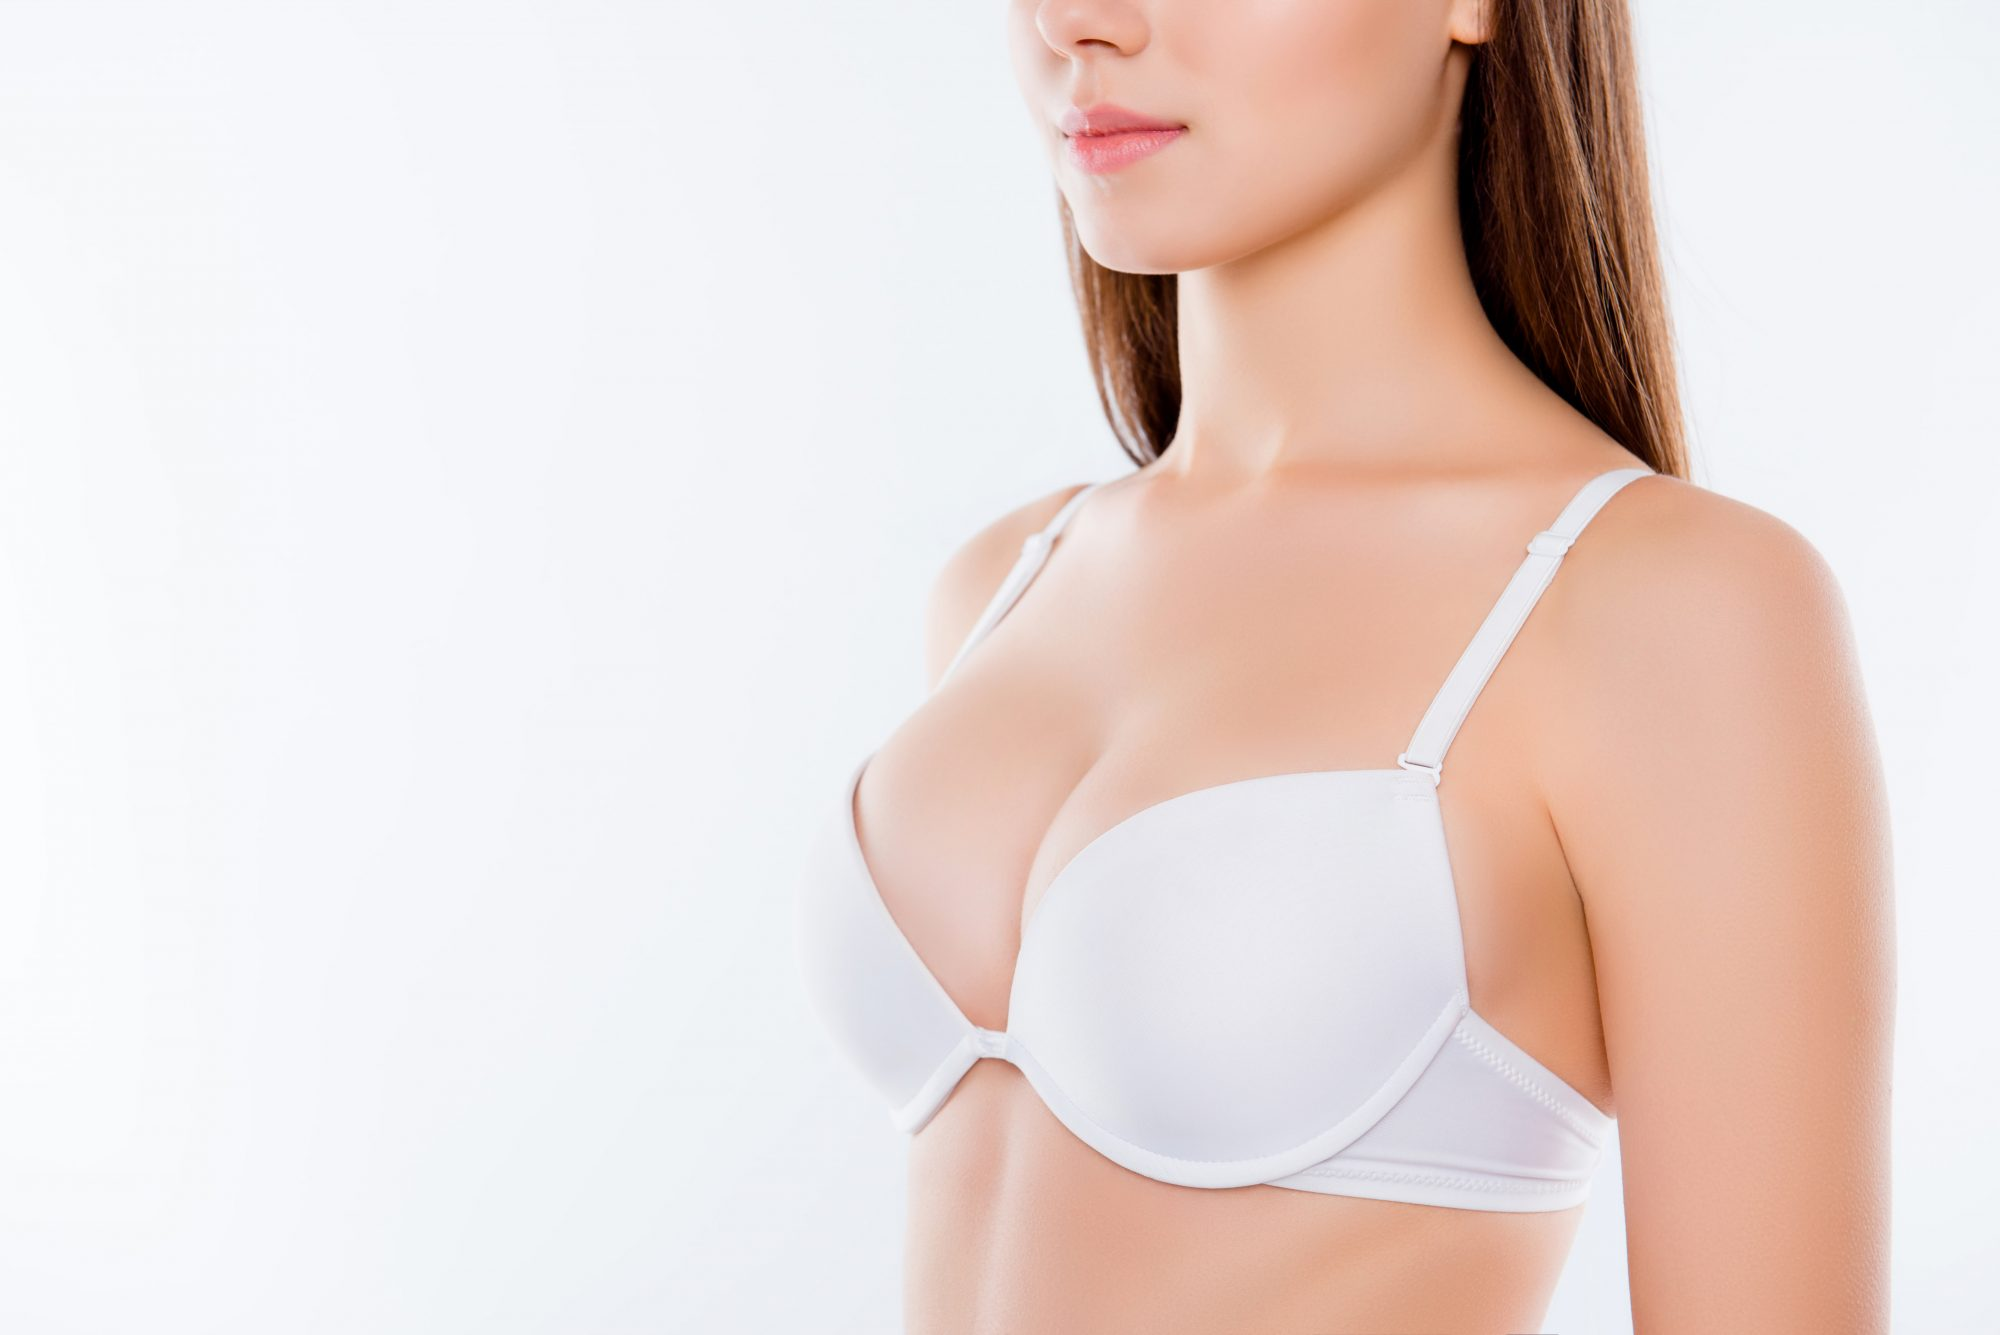 breast implant removal oklahoma / scar removal